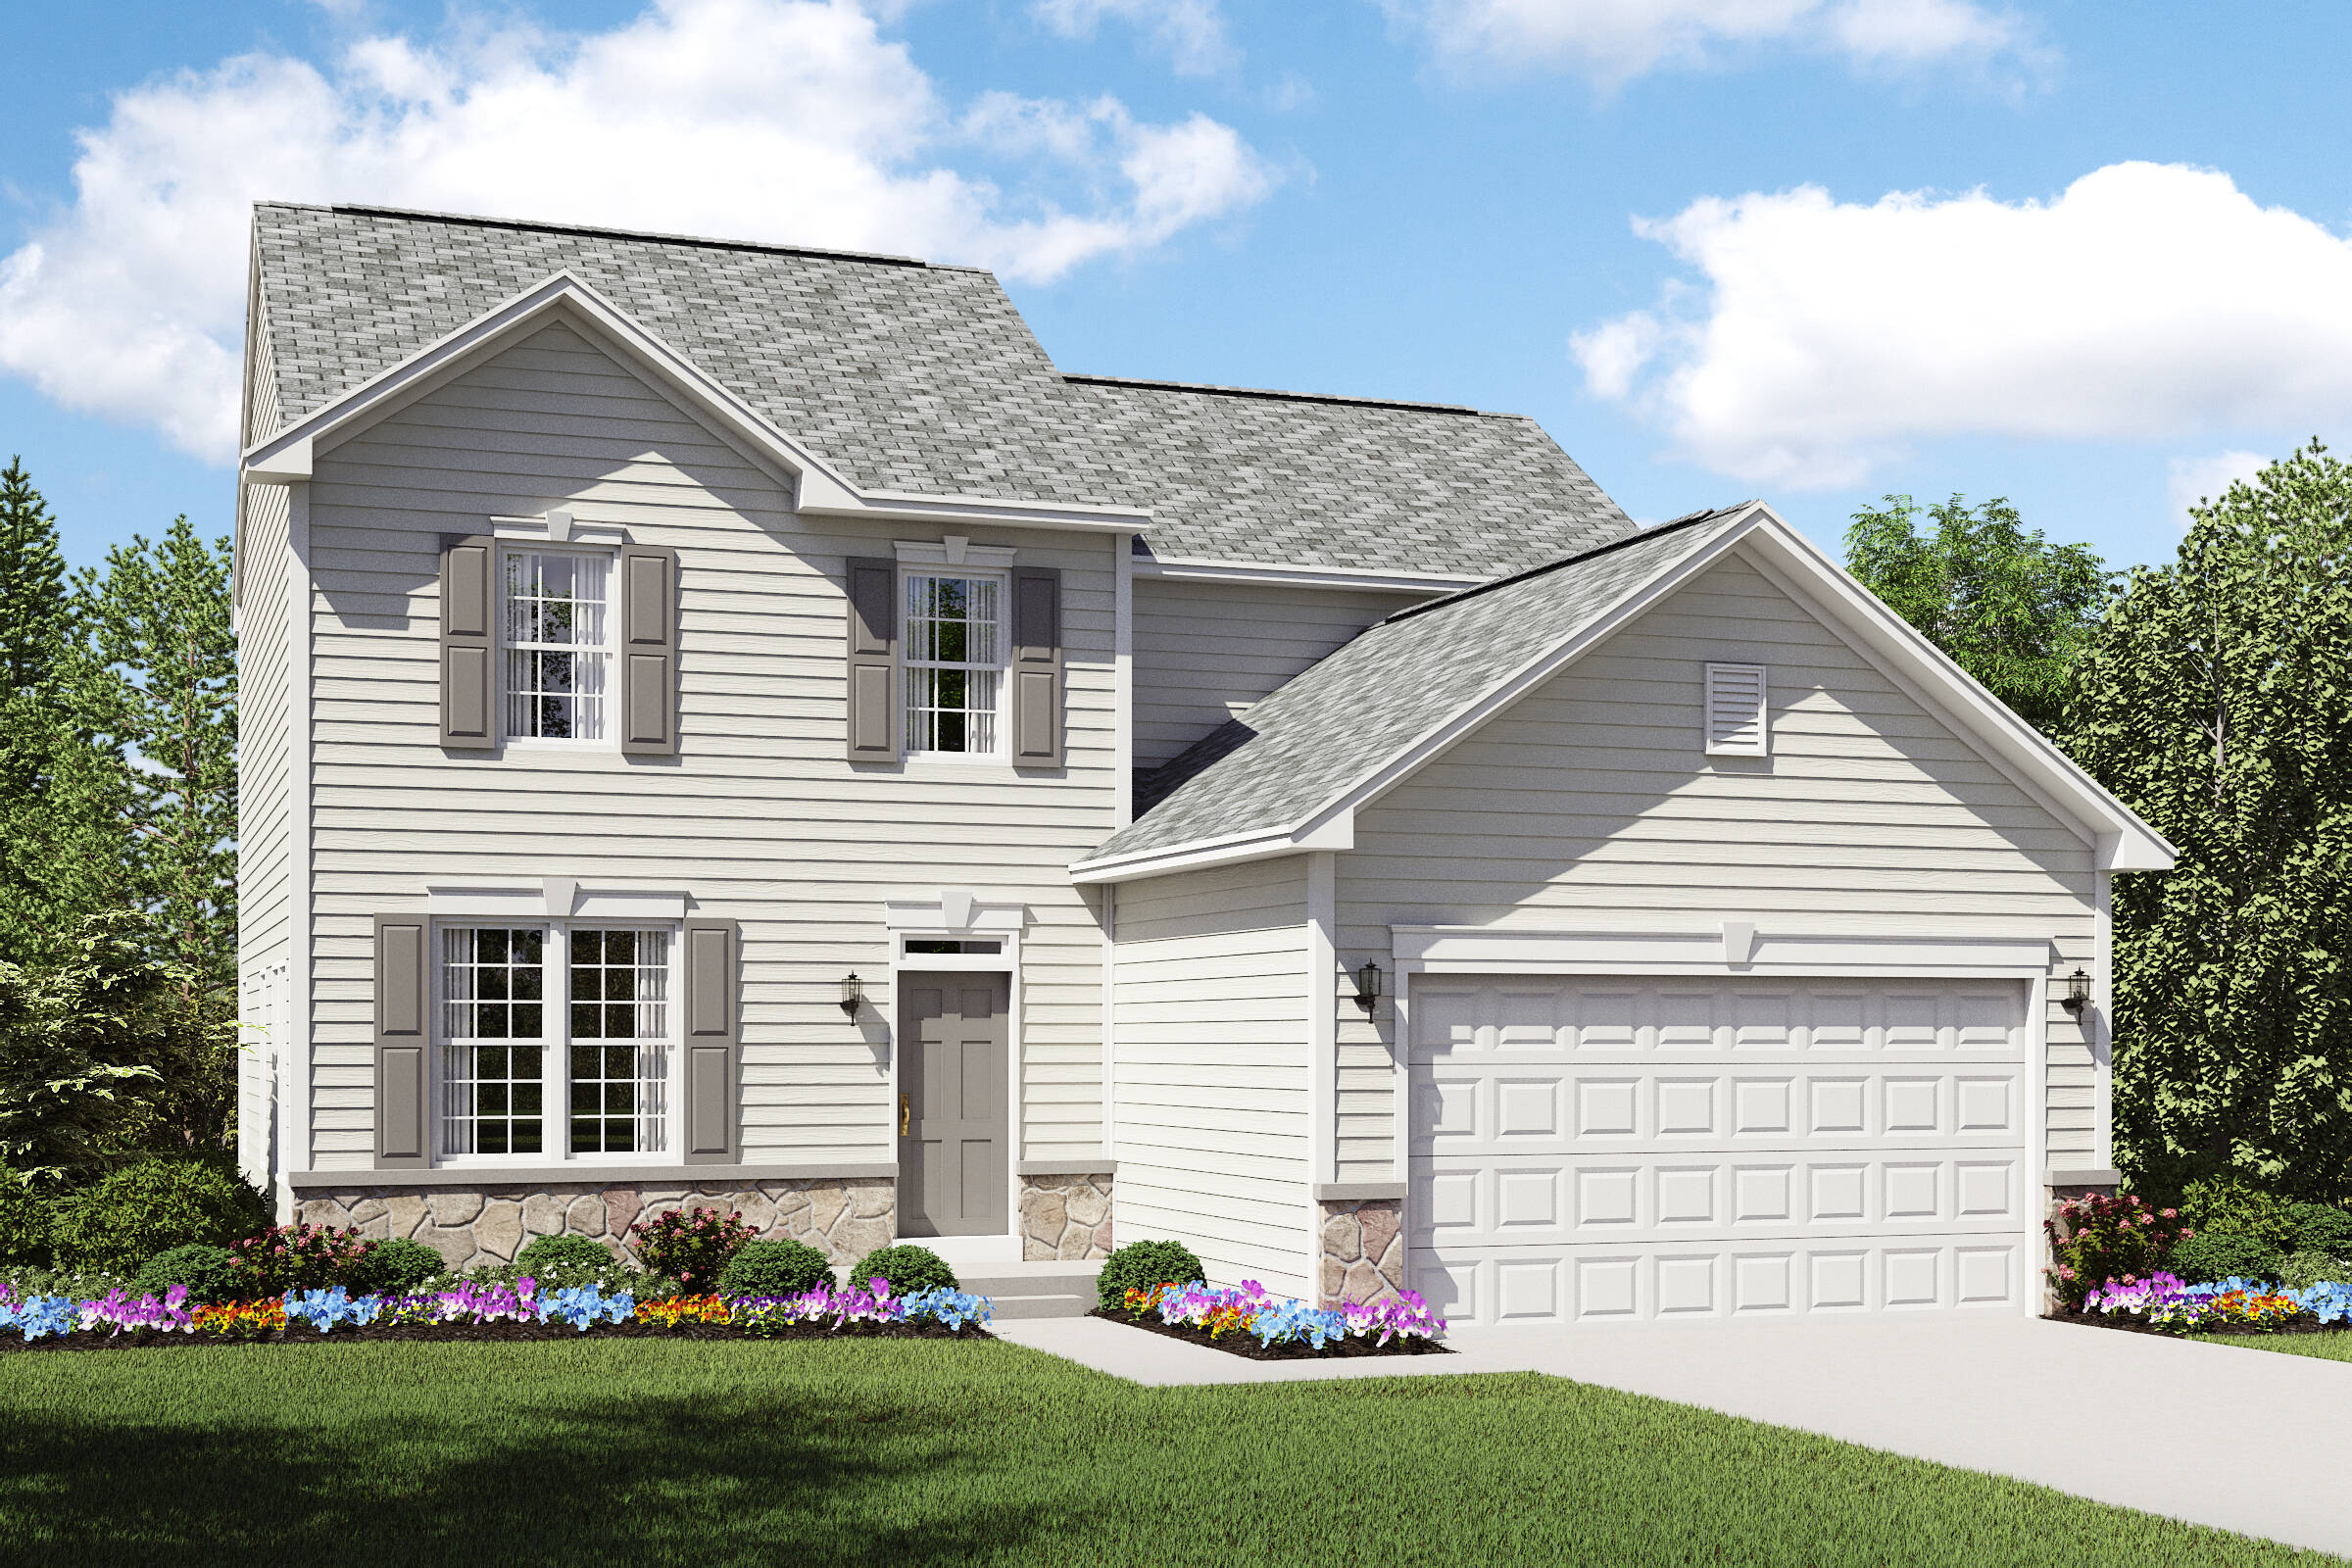 irving at new homes cleveland area